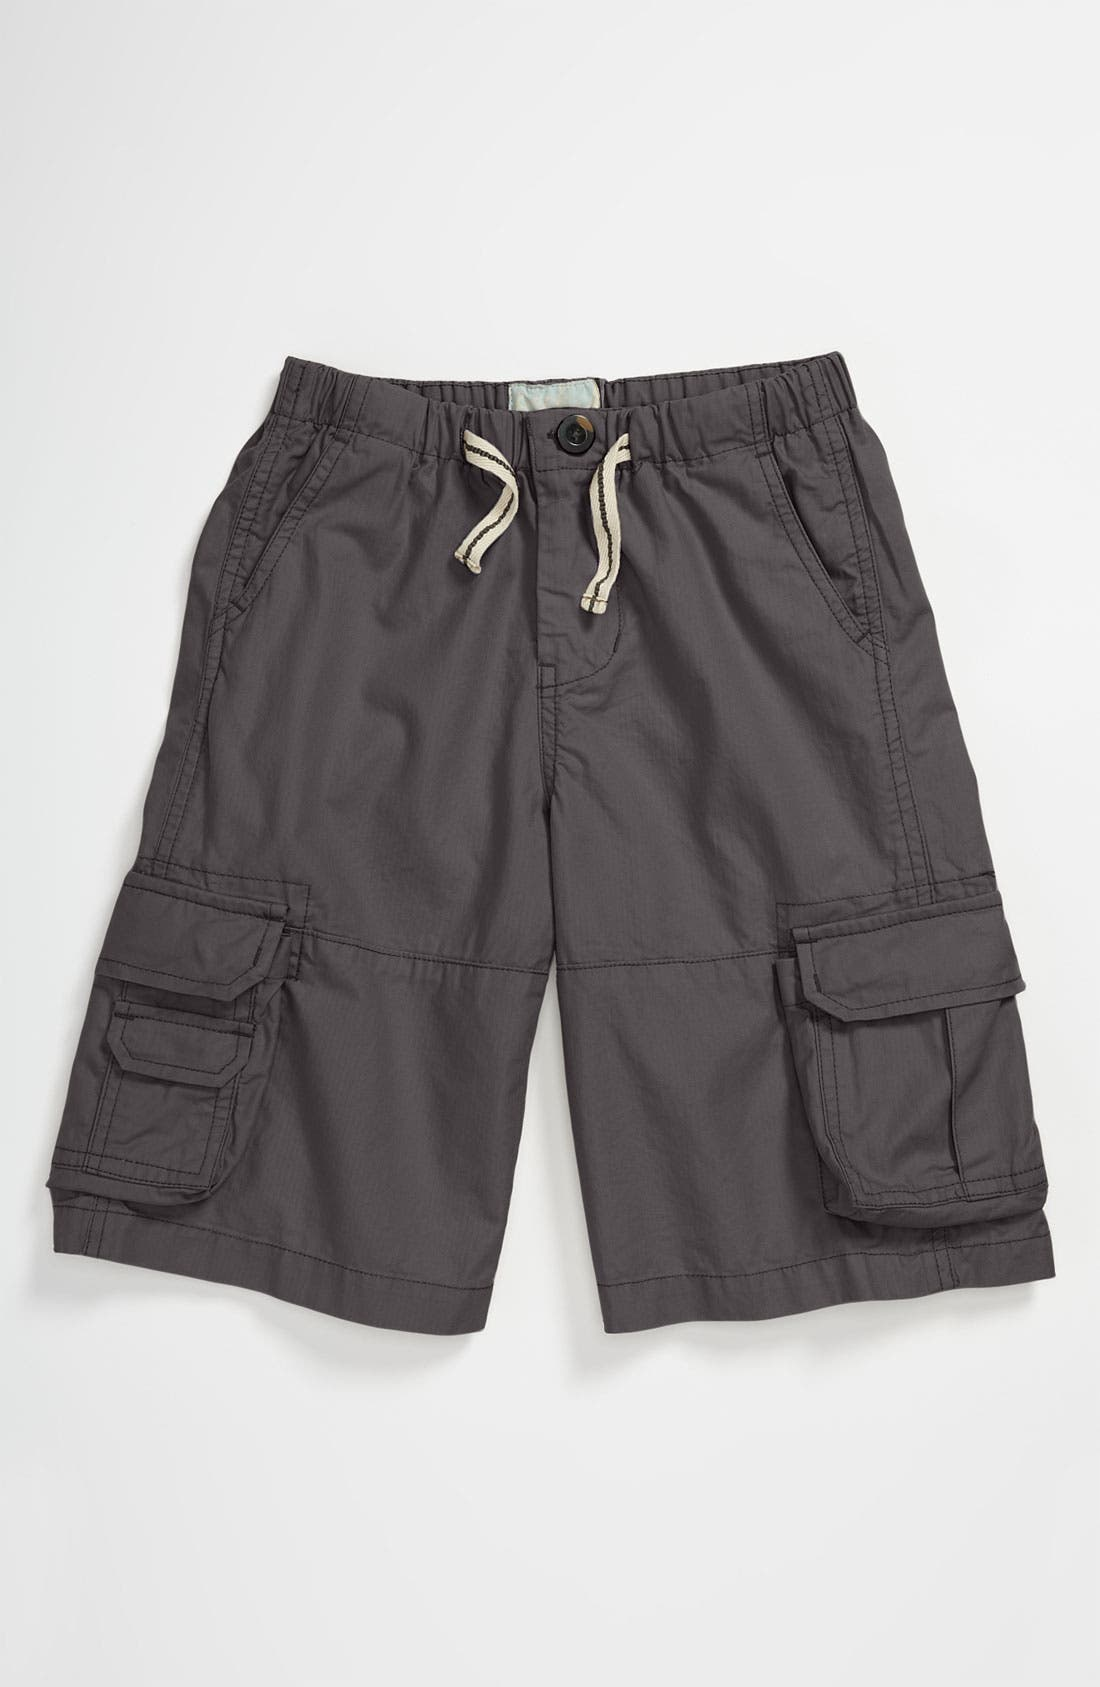 Alternate Image 1 Selected - Peek 'New Beach' Cargo Shorts (Toddler, Little Boys & Big Boys)